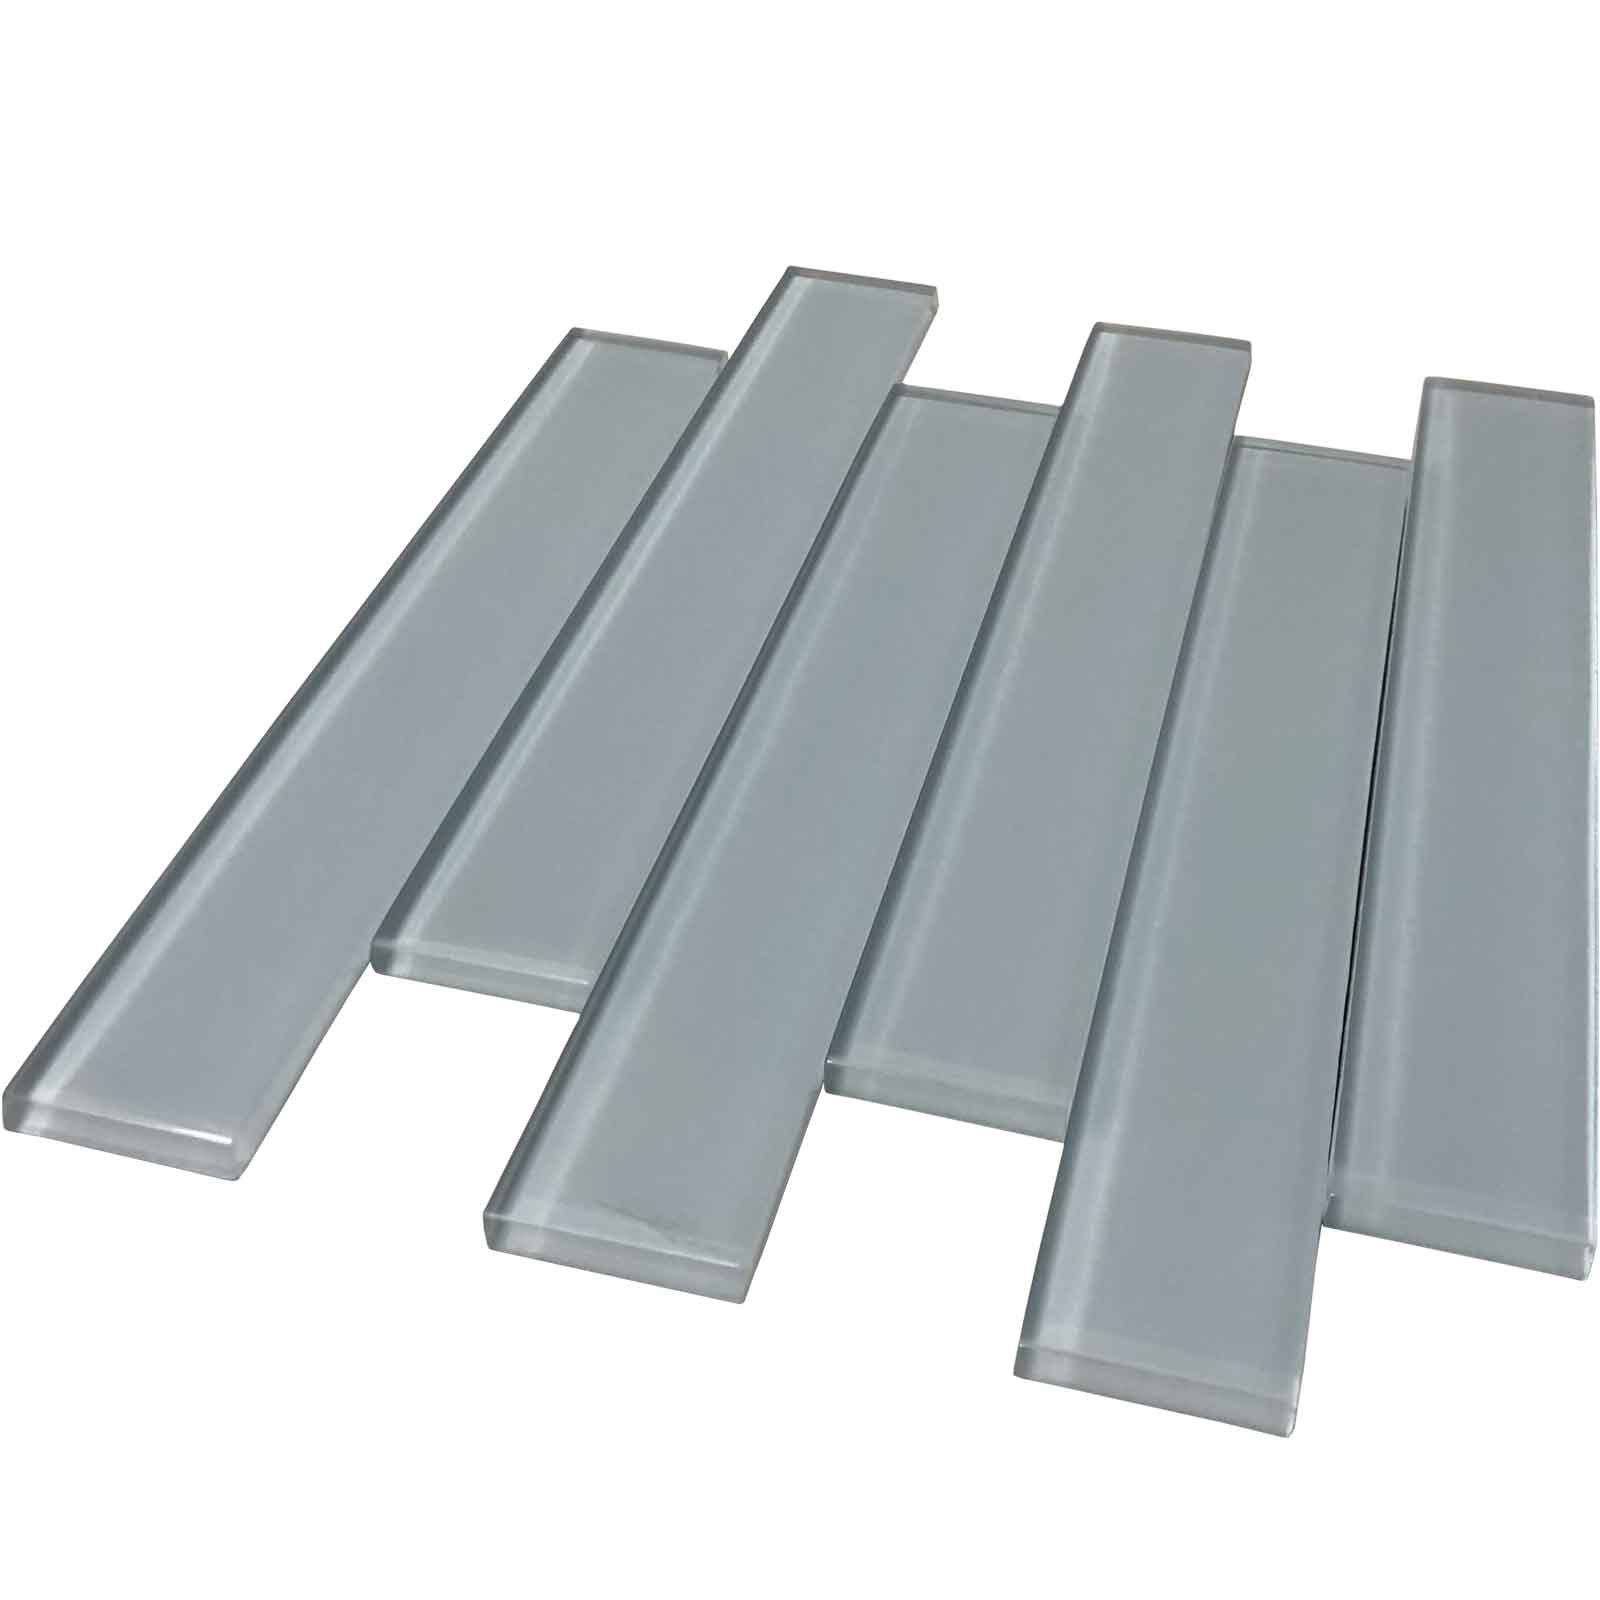 Pewter Glass Tile 2 X 12 Polished